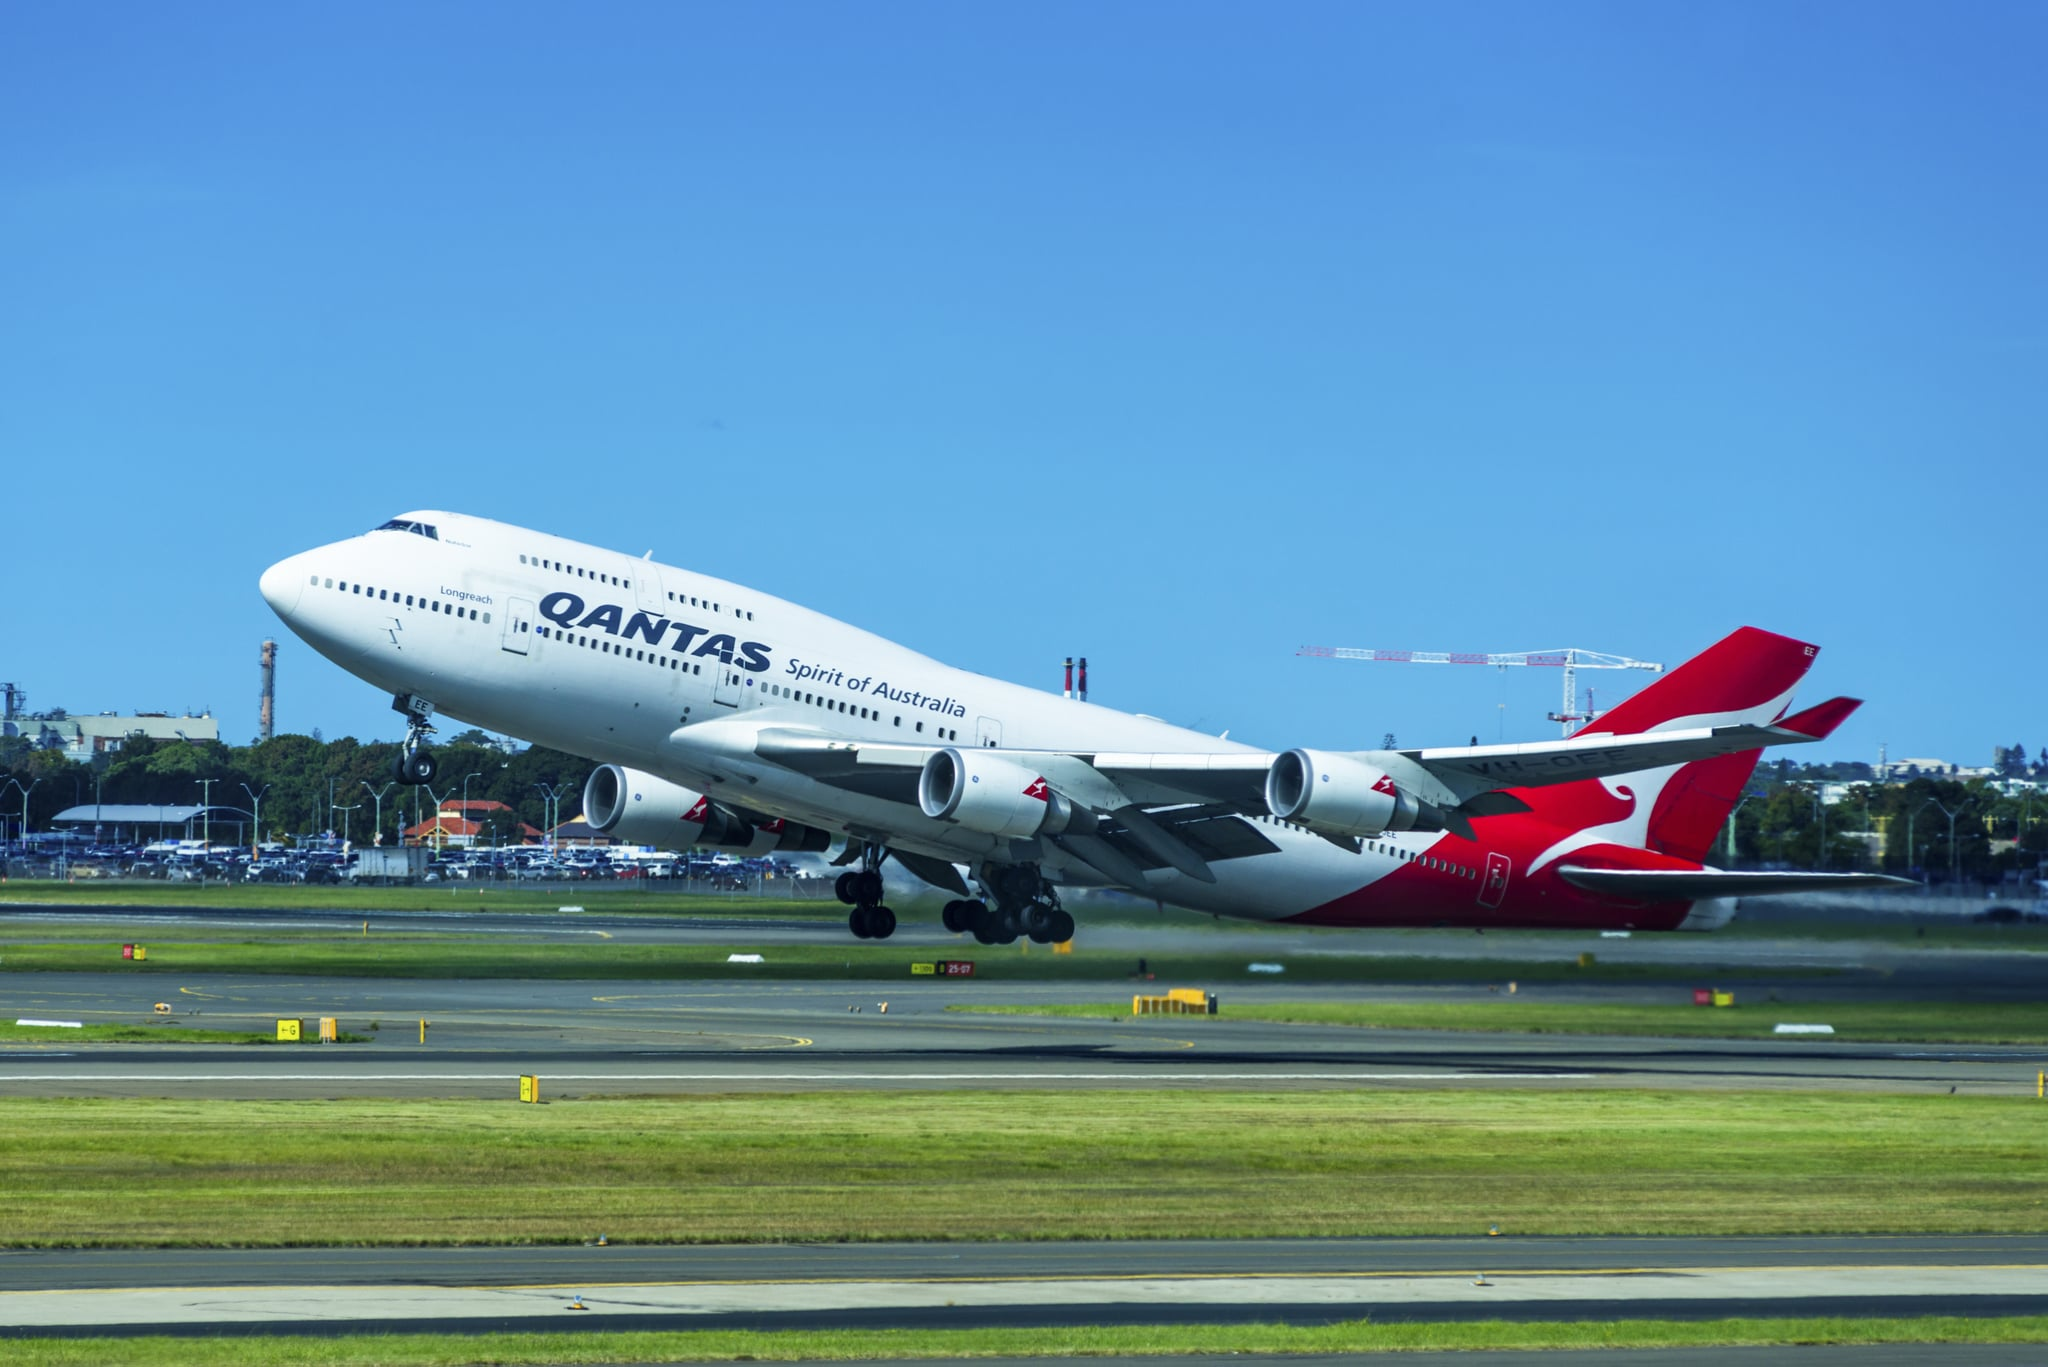 Qantas 747 jumbo jet taking off at Sydney International Airport, New South Wales, Australia. (Photo by: Education Images/Universal Images Group via Getty Images)